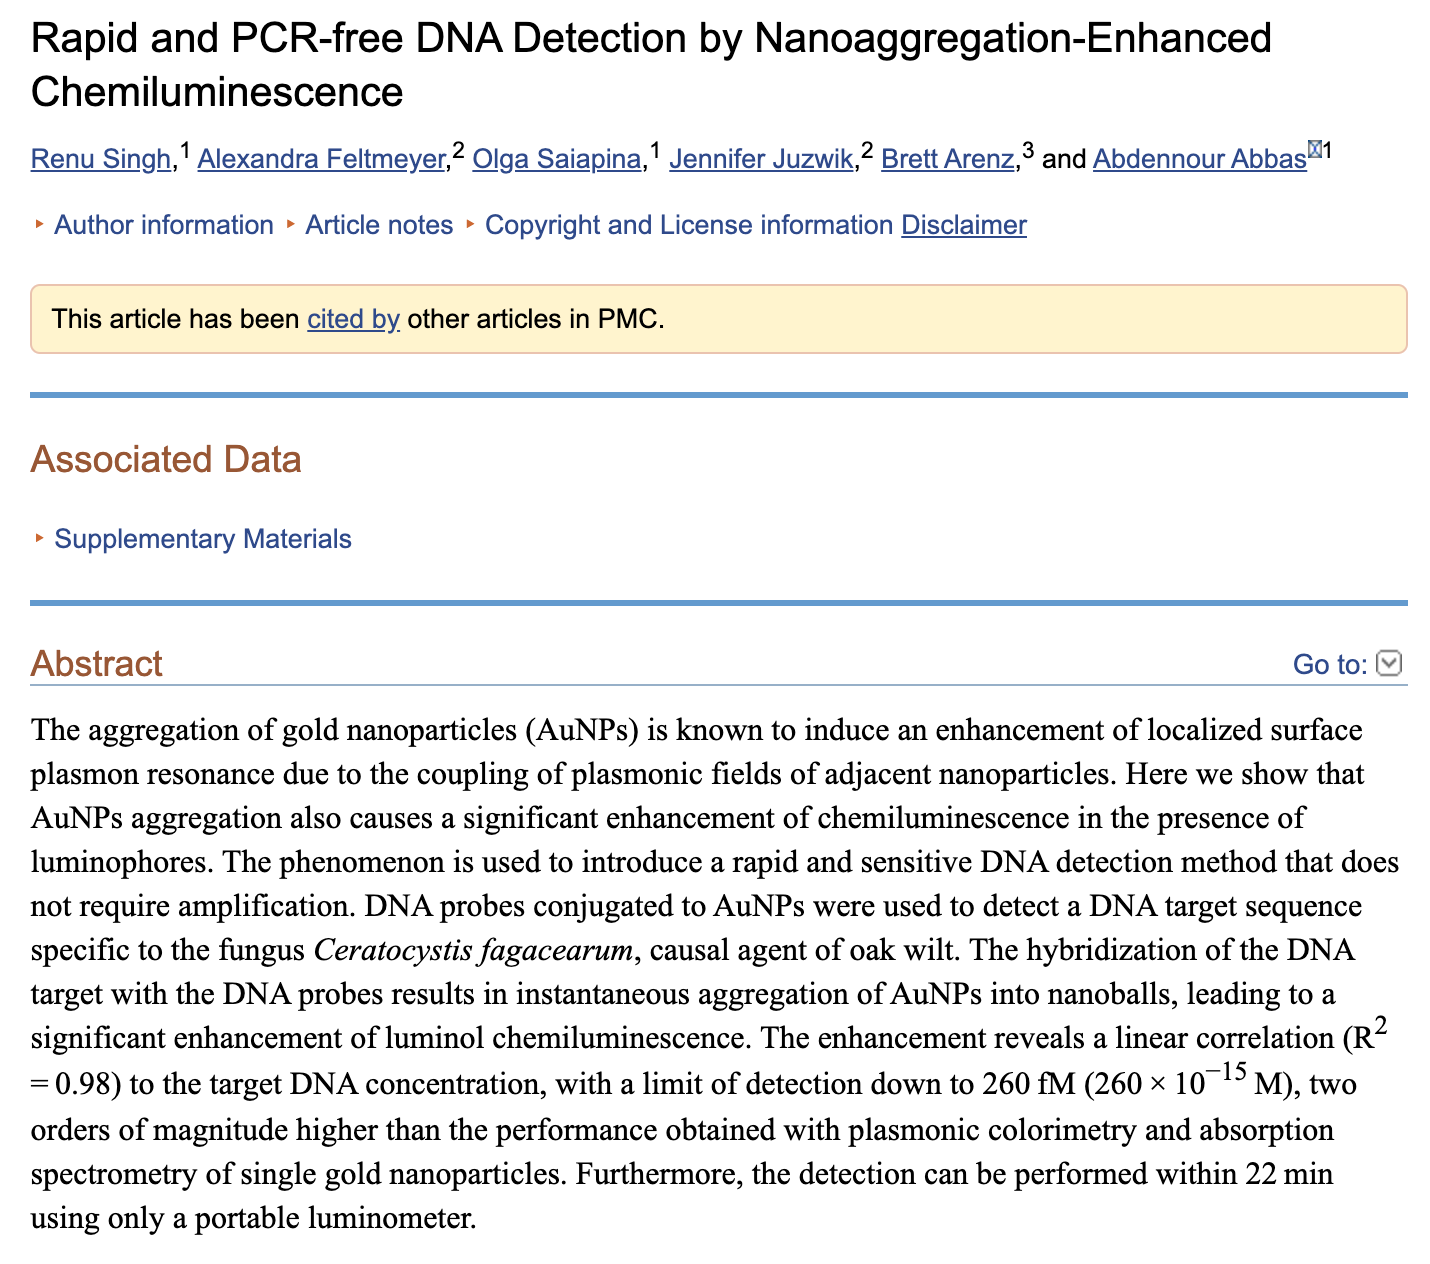 Rapid and PCR DNA Detection Abstract